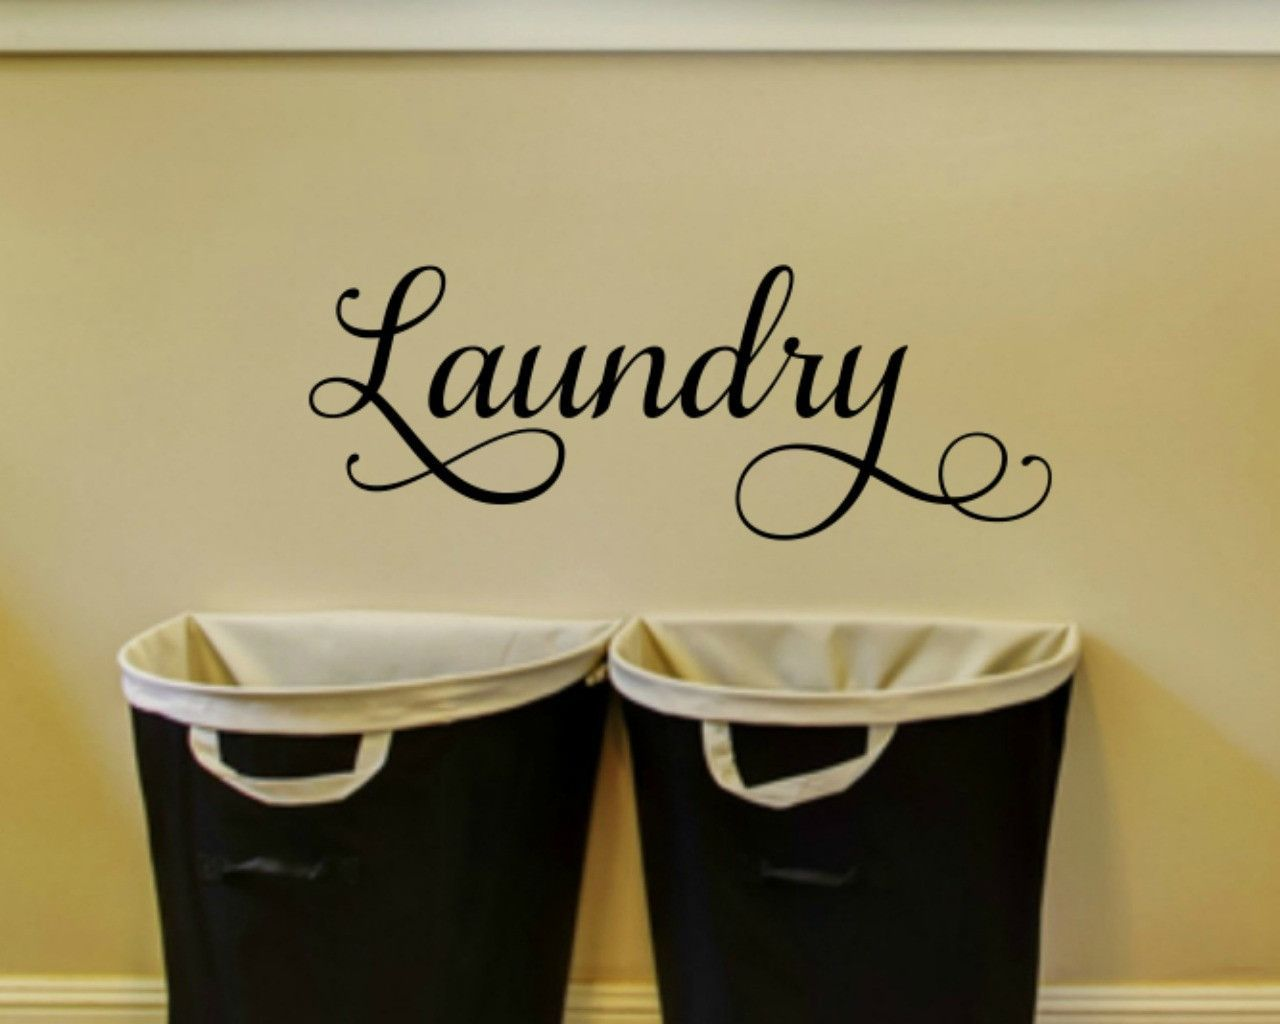 Laundry Door Decal Laundry Room Wall Decal | Laundry rooms, Laundry ...